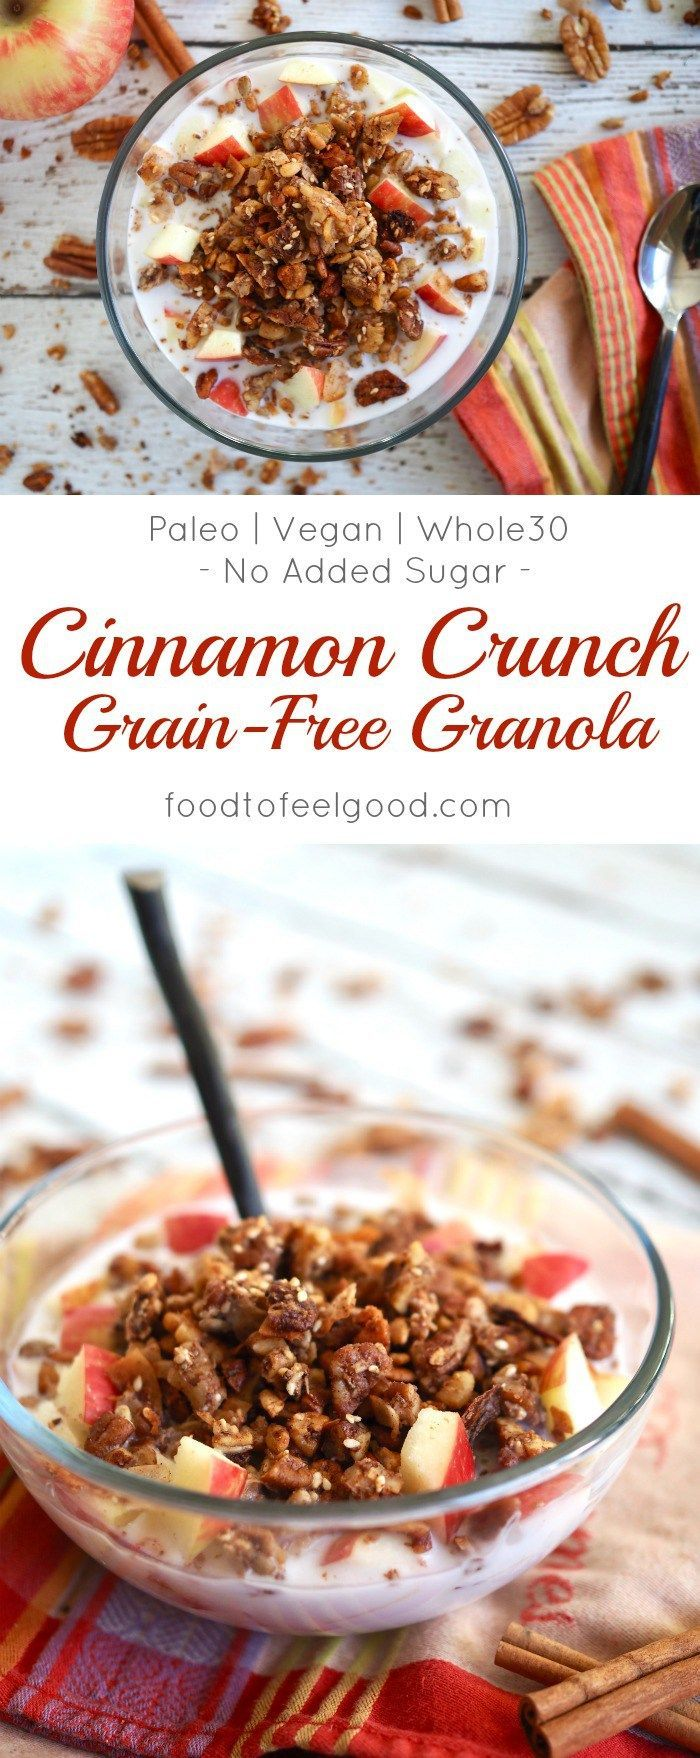 362573 best food bloggers group board images on pinterest kitchens cinnamon crunch grain free granola forumfinder Gallery